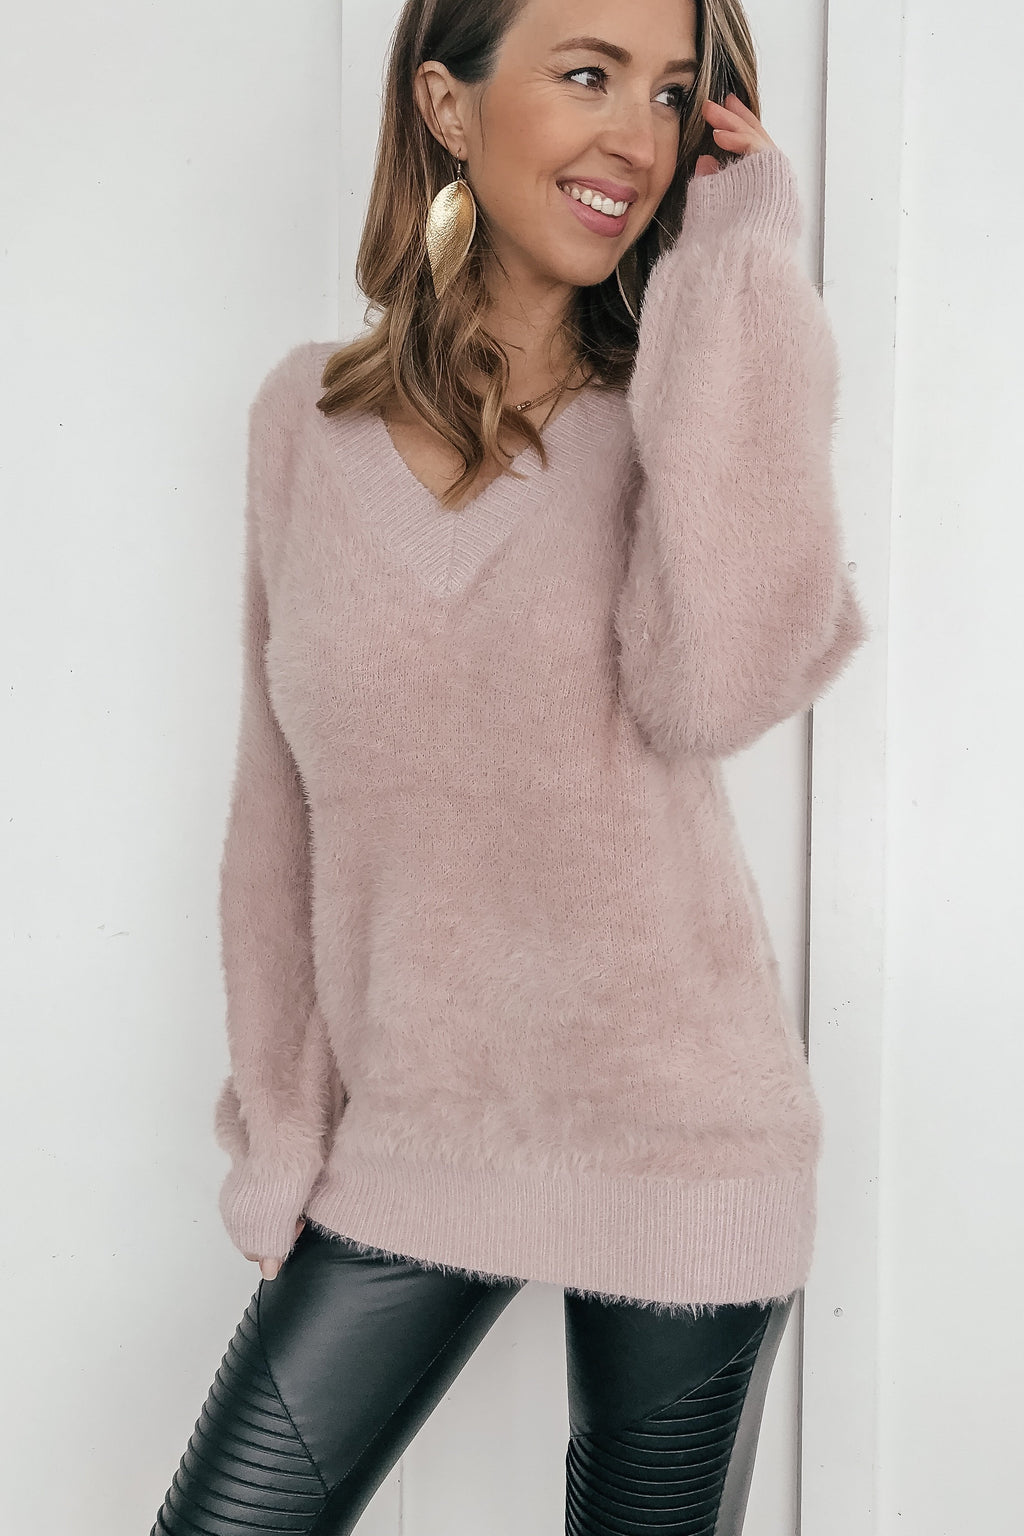 Anything Goes Fuzzy Knit Sweater - LURE Boutique